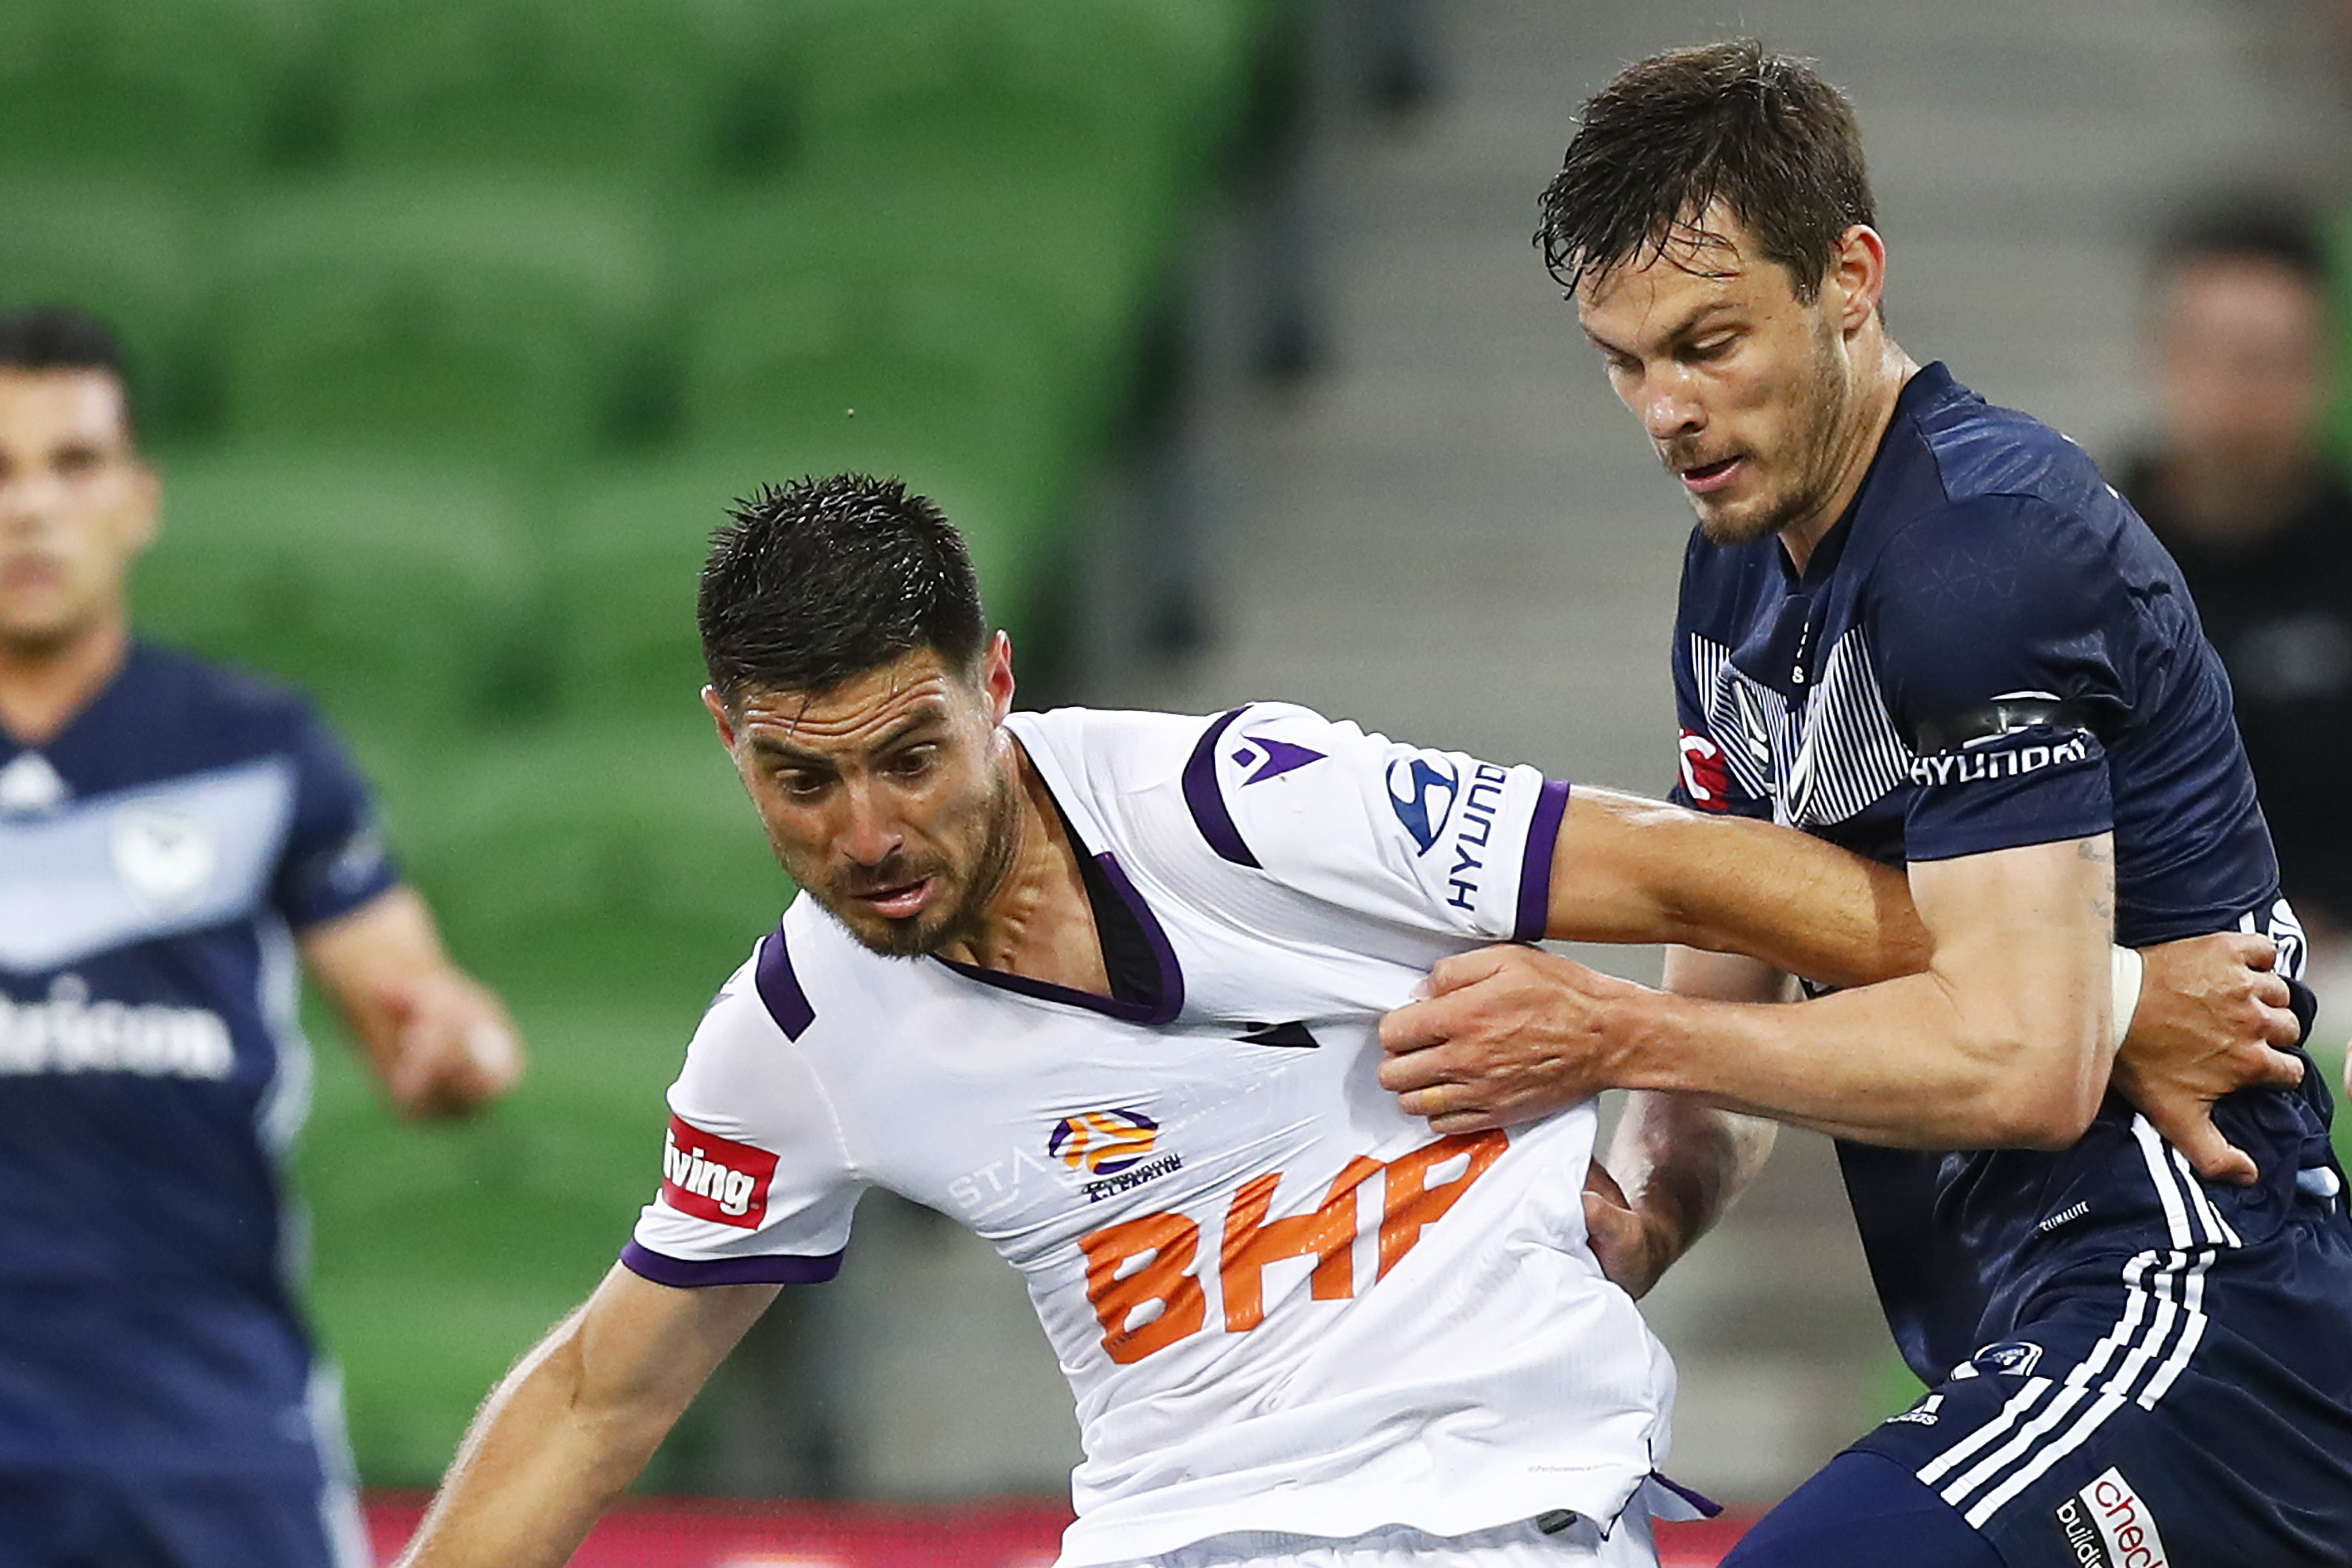 James Donachie gave Glory star Bruno Fornaroli no breathing space on Friday night